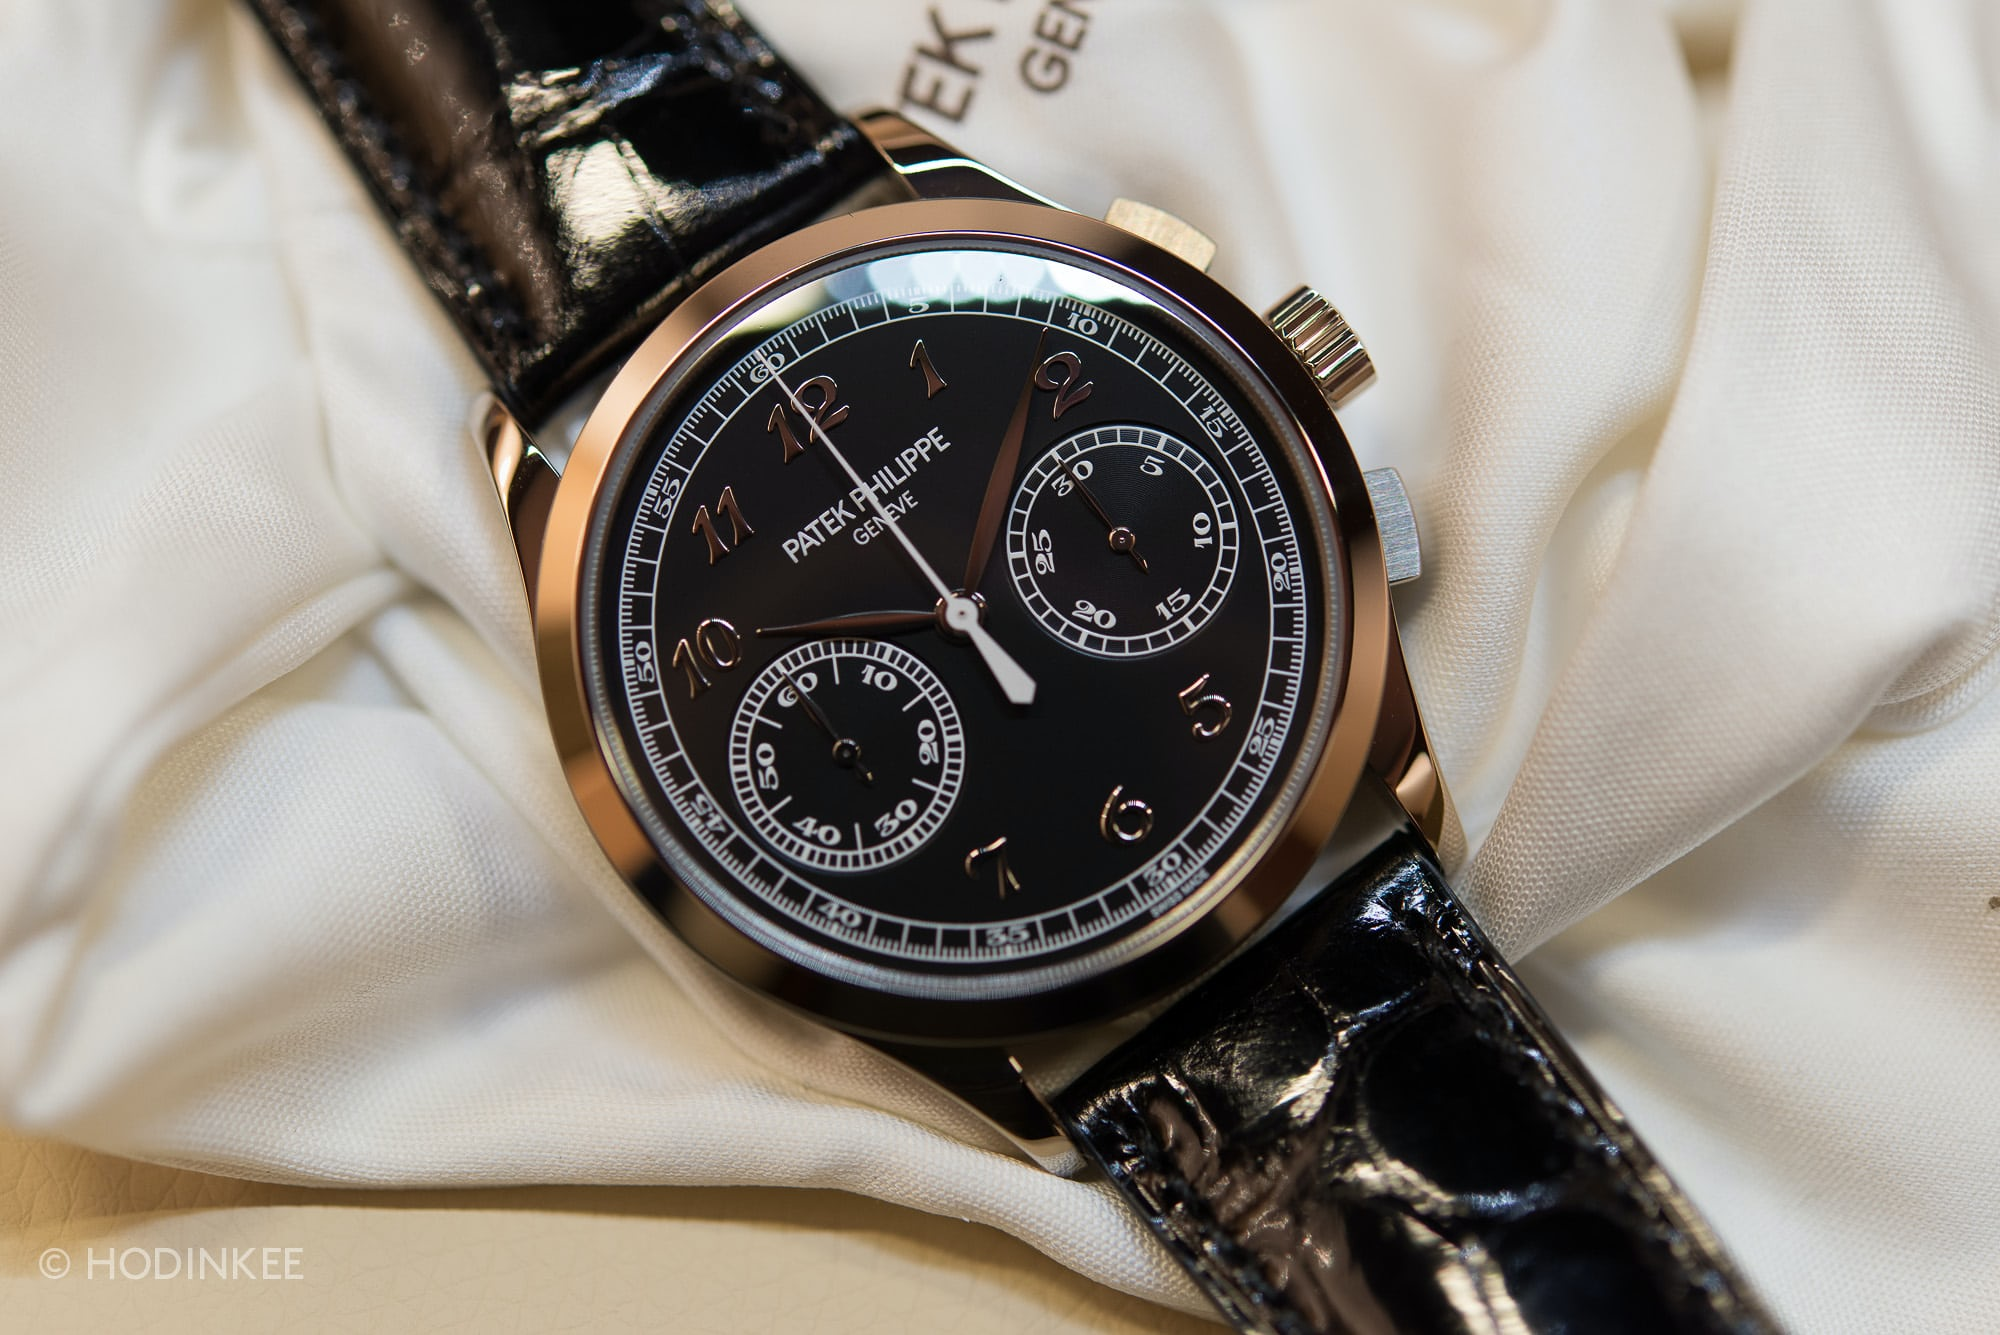 Hands On With The Patek Philippe 5170g Chronograph With Black Dial